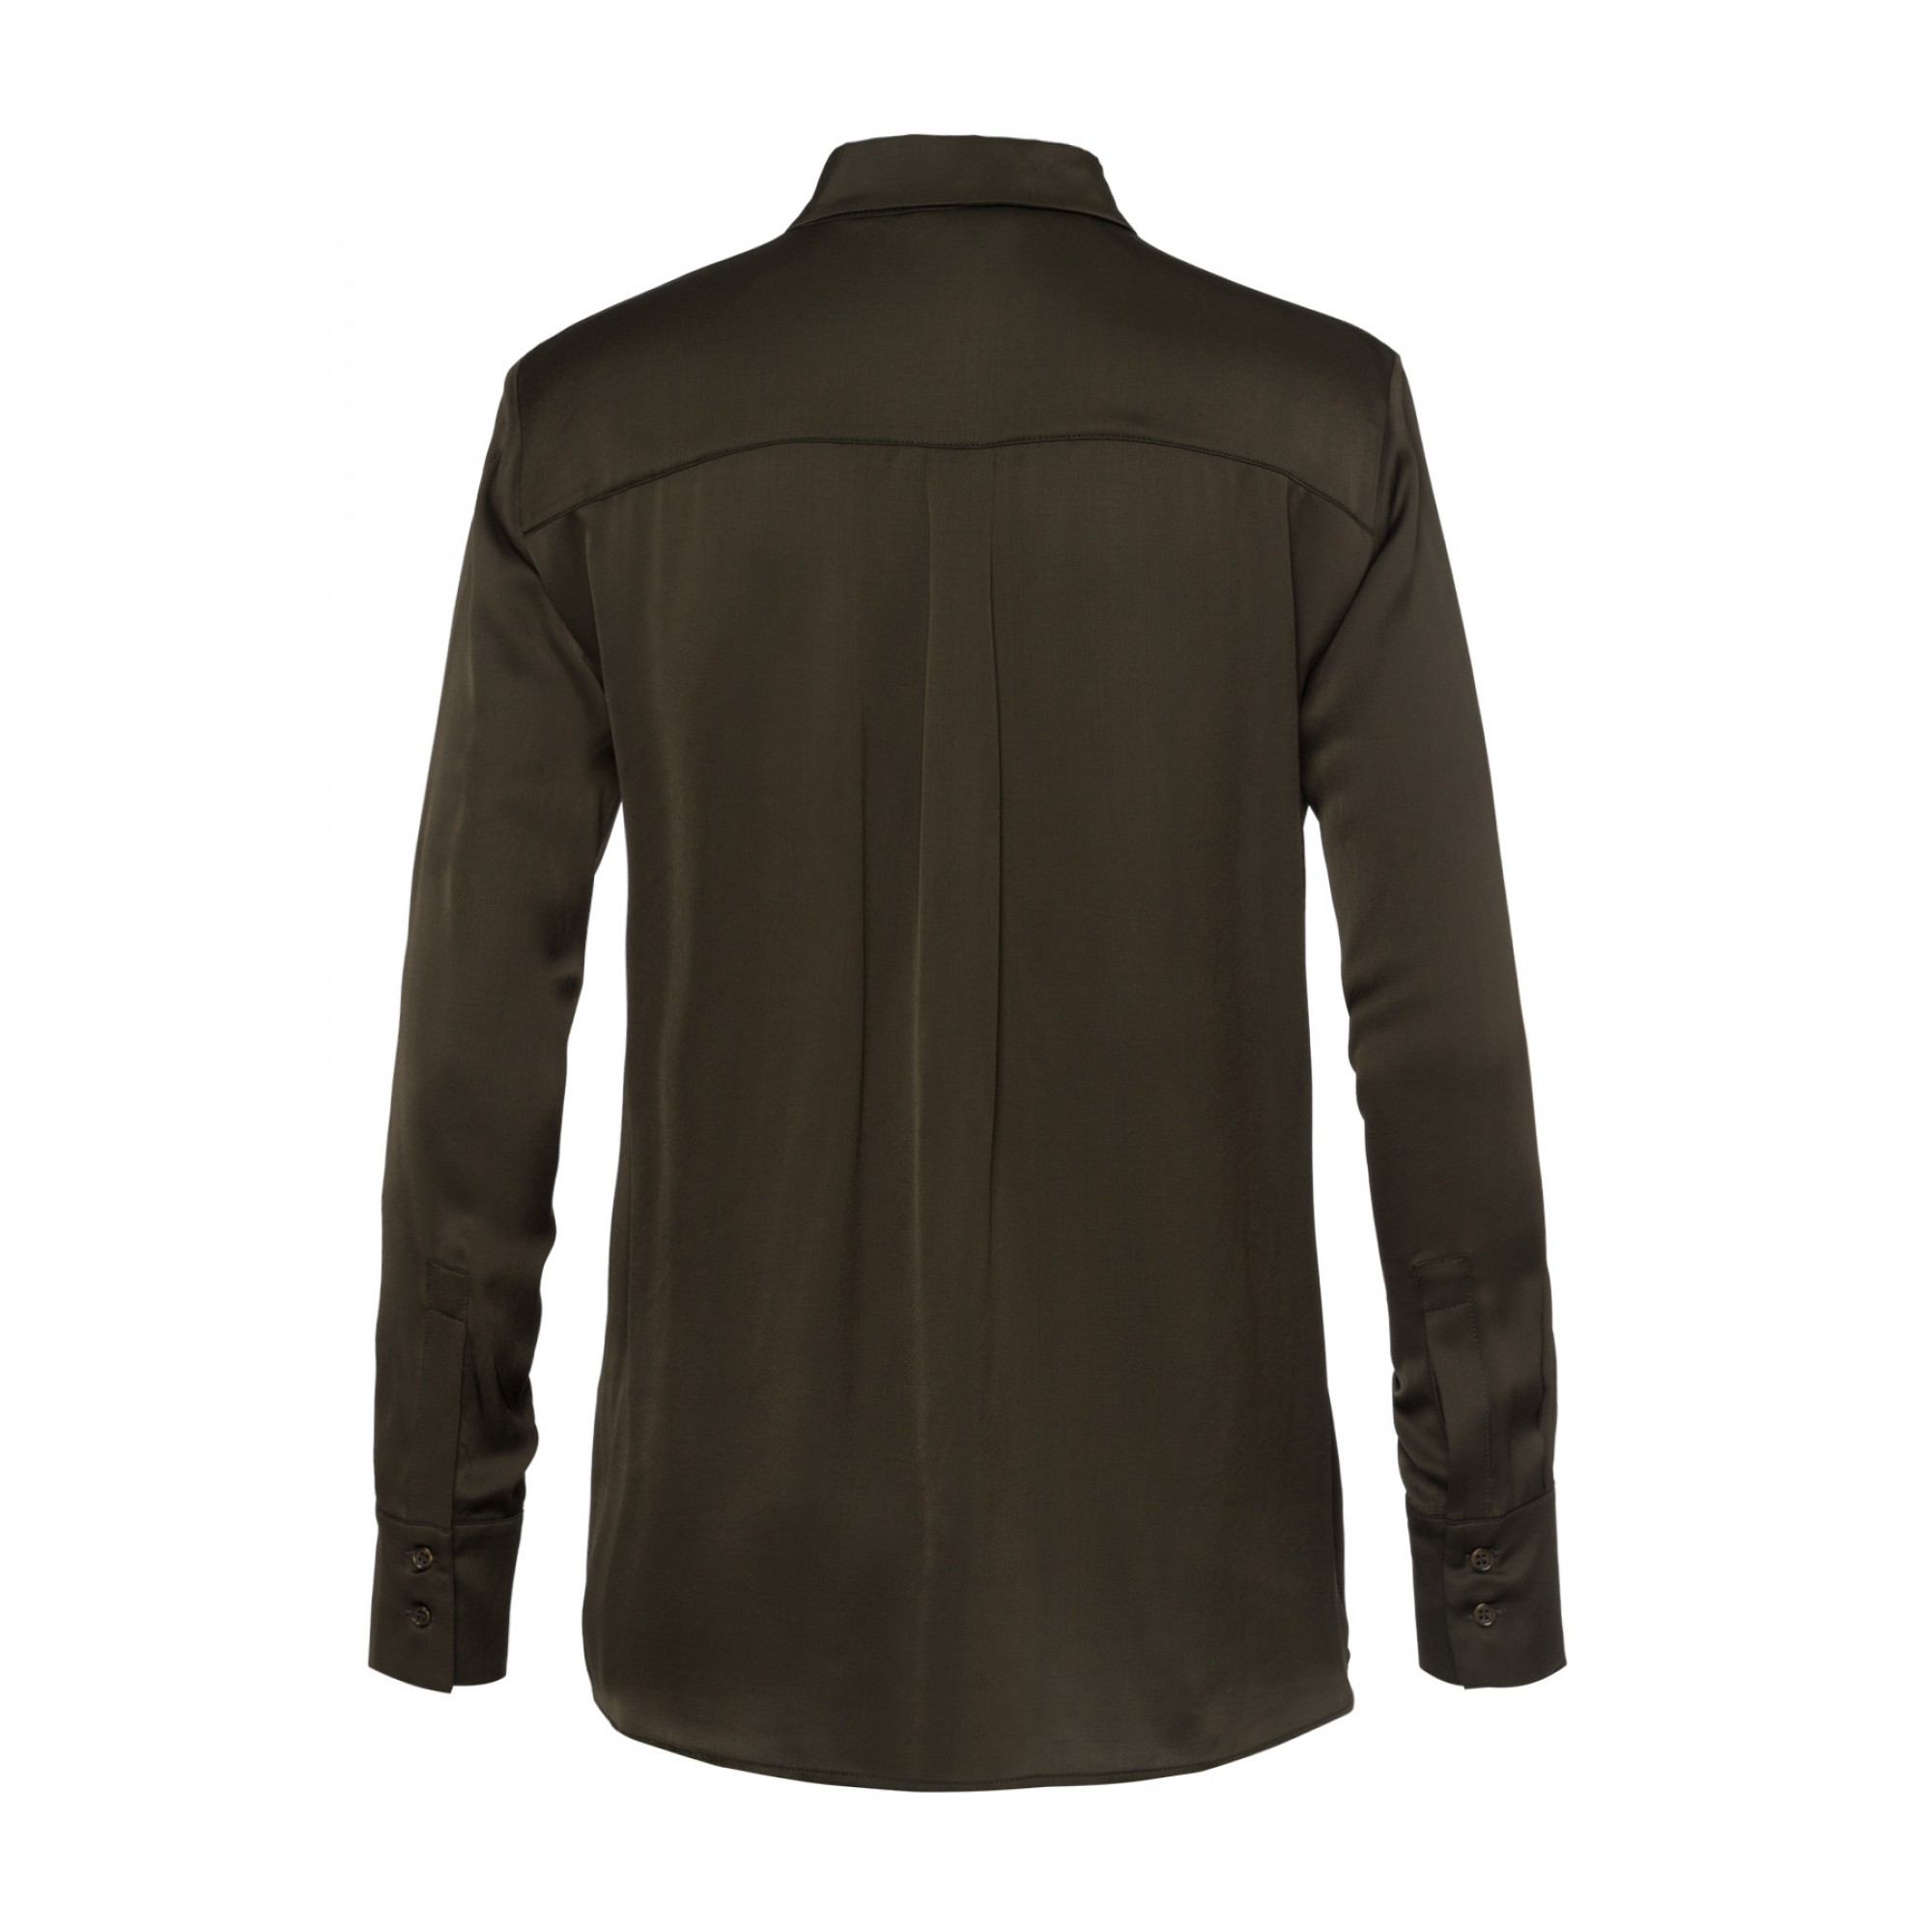 Satinbluse, dark olive 01082056-0678 2